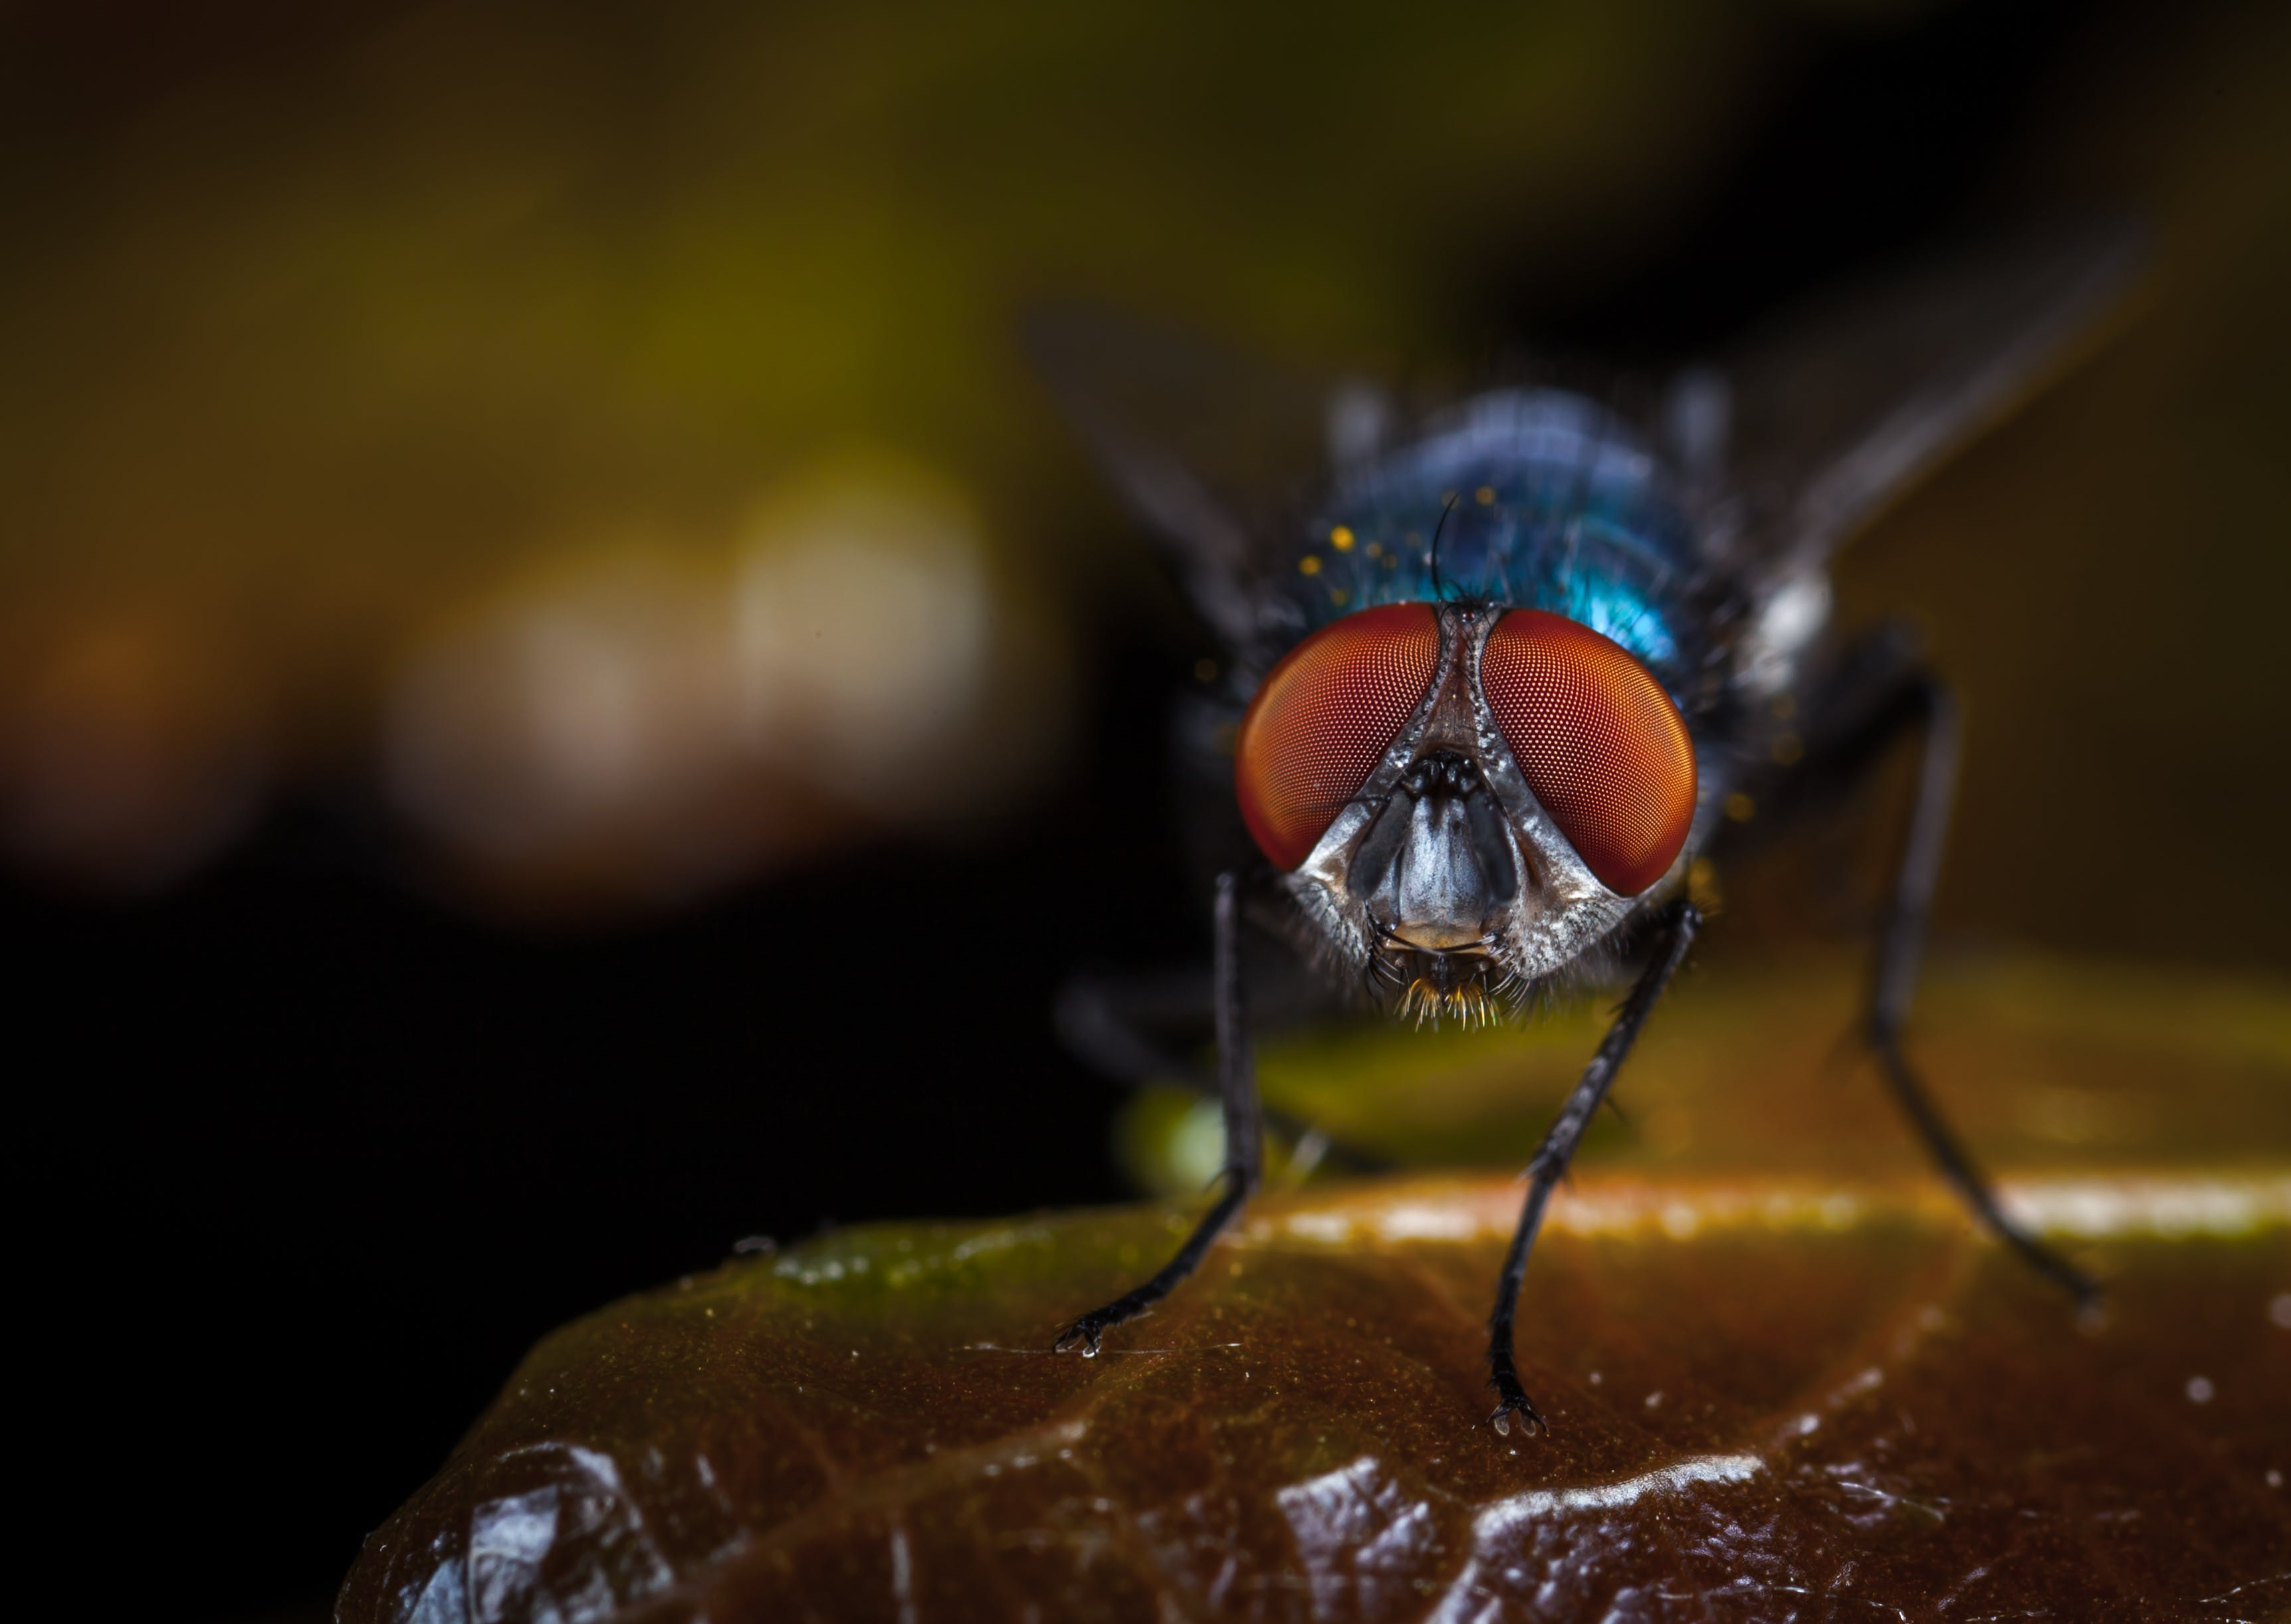 Macro Photography of Fly Perched on Brown Leaf